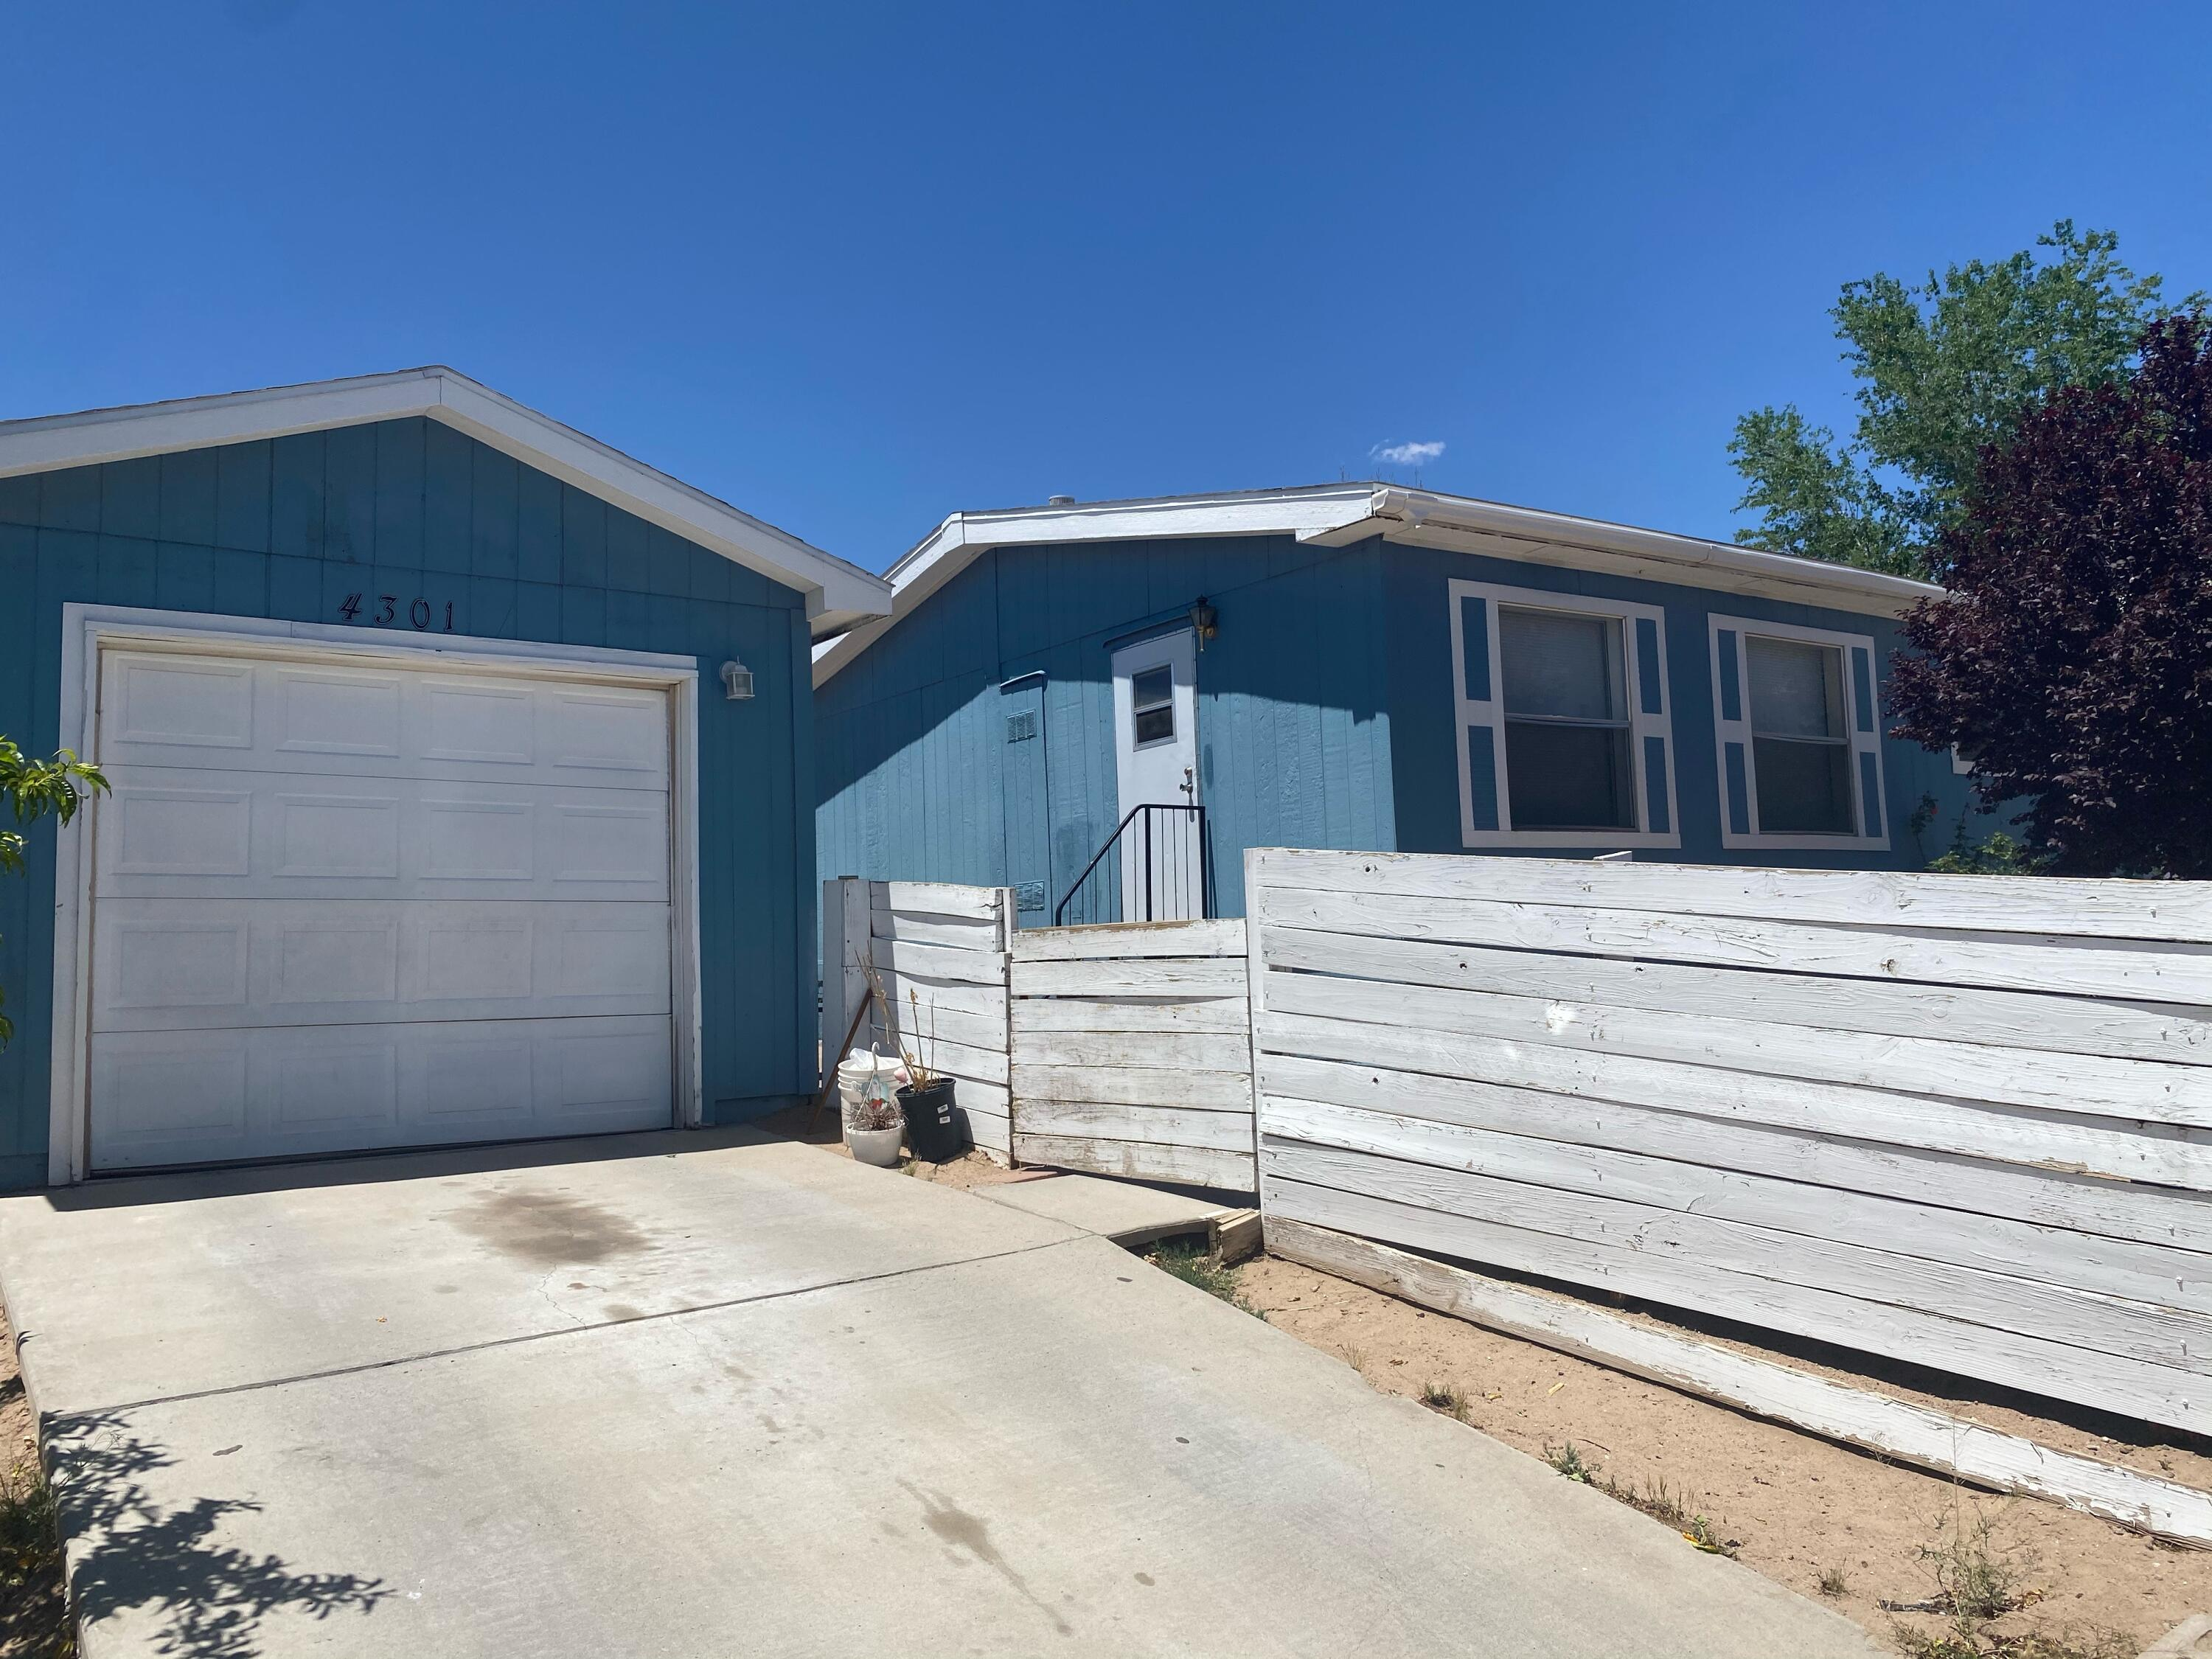 SELLING AS IS!!! FHA eligible. Property is in the process of getting a new roof. Property is in livable condition. This will go quick! It is on a permanent foundation with a deactivated title. Please call Leo 505-301-1292 if you have questions.